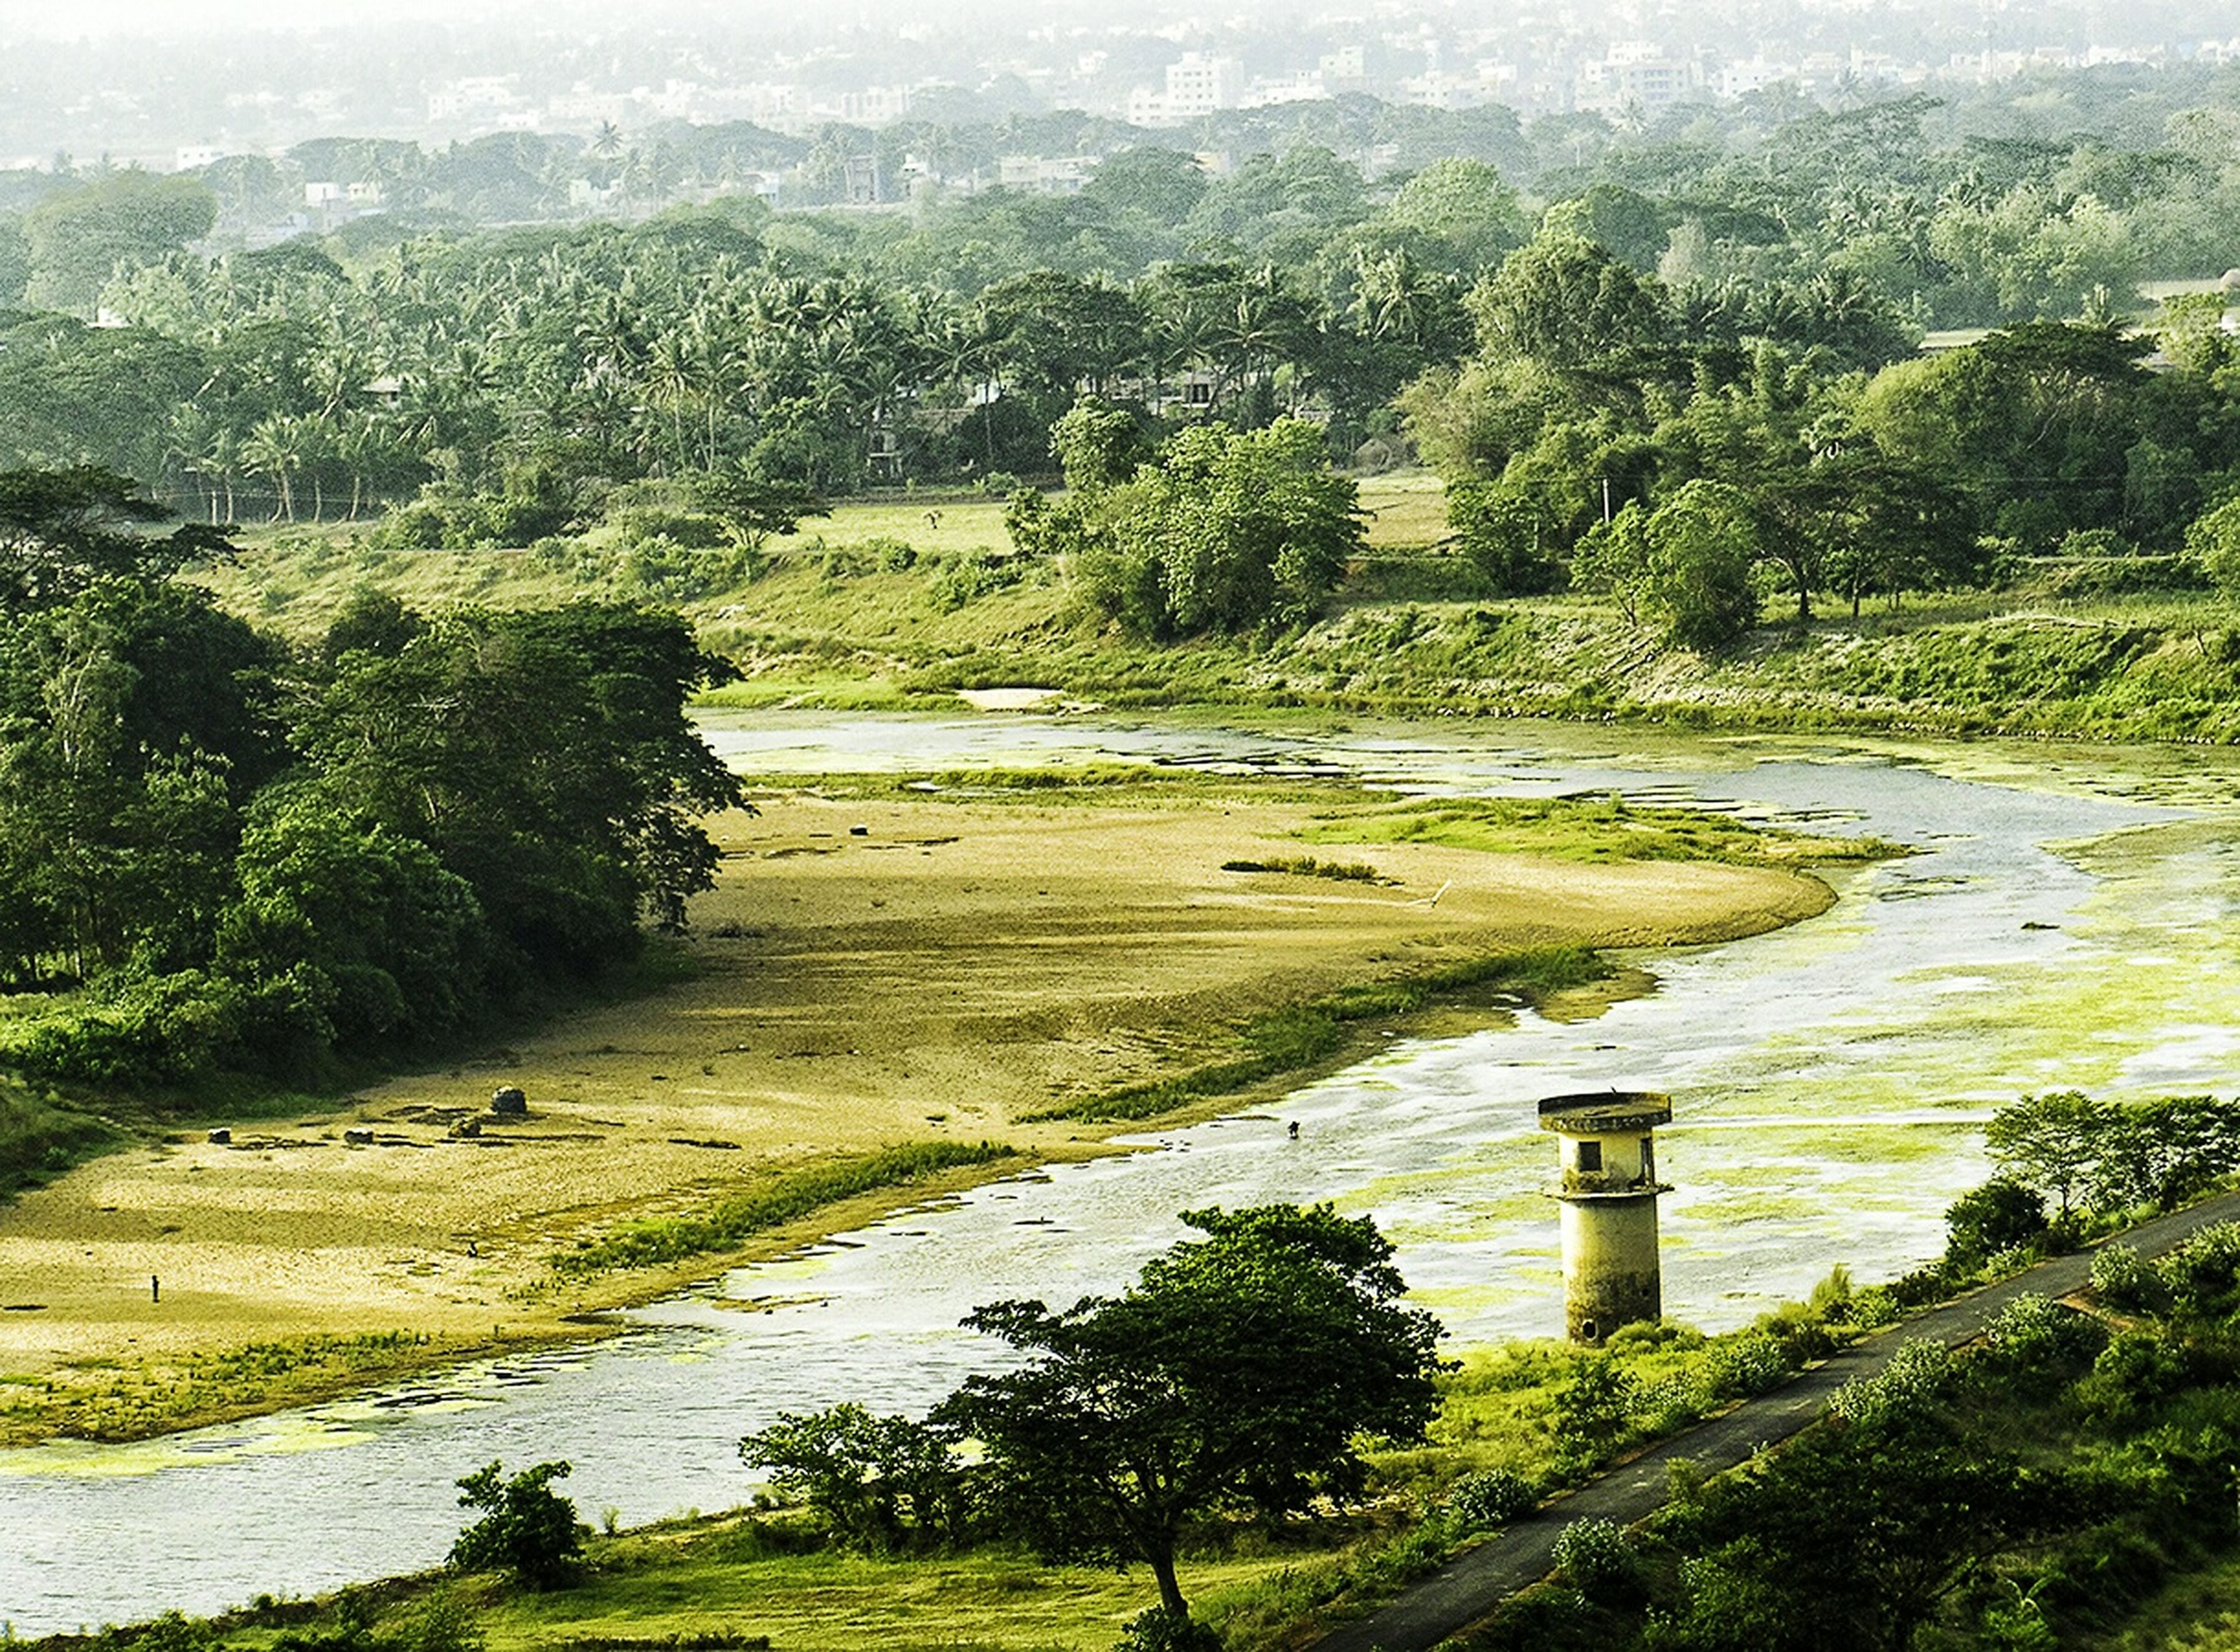 First Eyeem Photo Dhauli Bhubaneswar Lighthouse Daya River Landscape Green River Odisha Getting To Know Ashoka